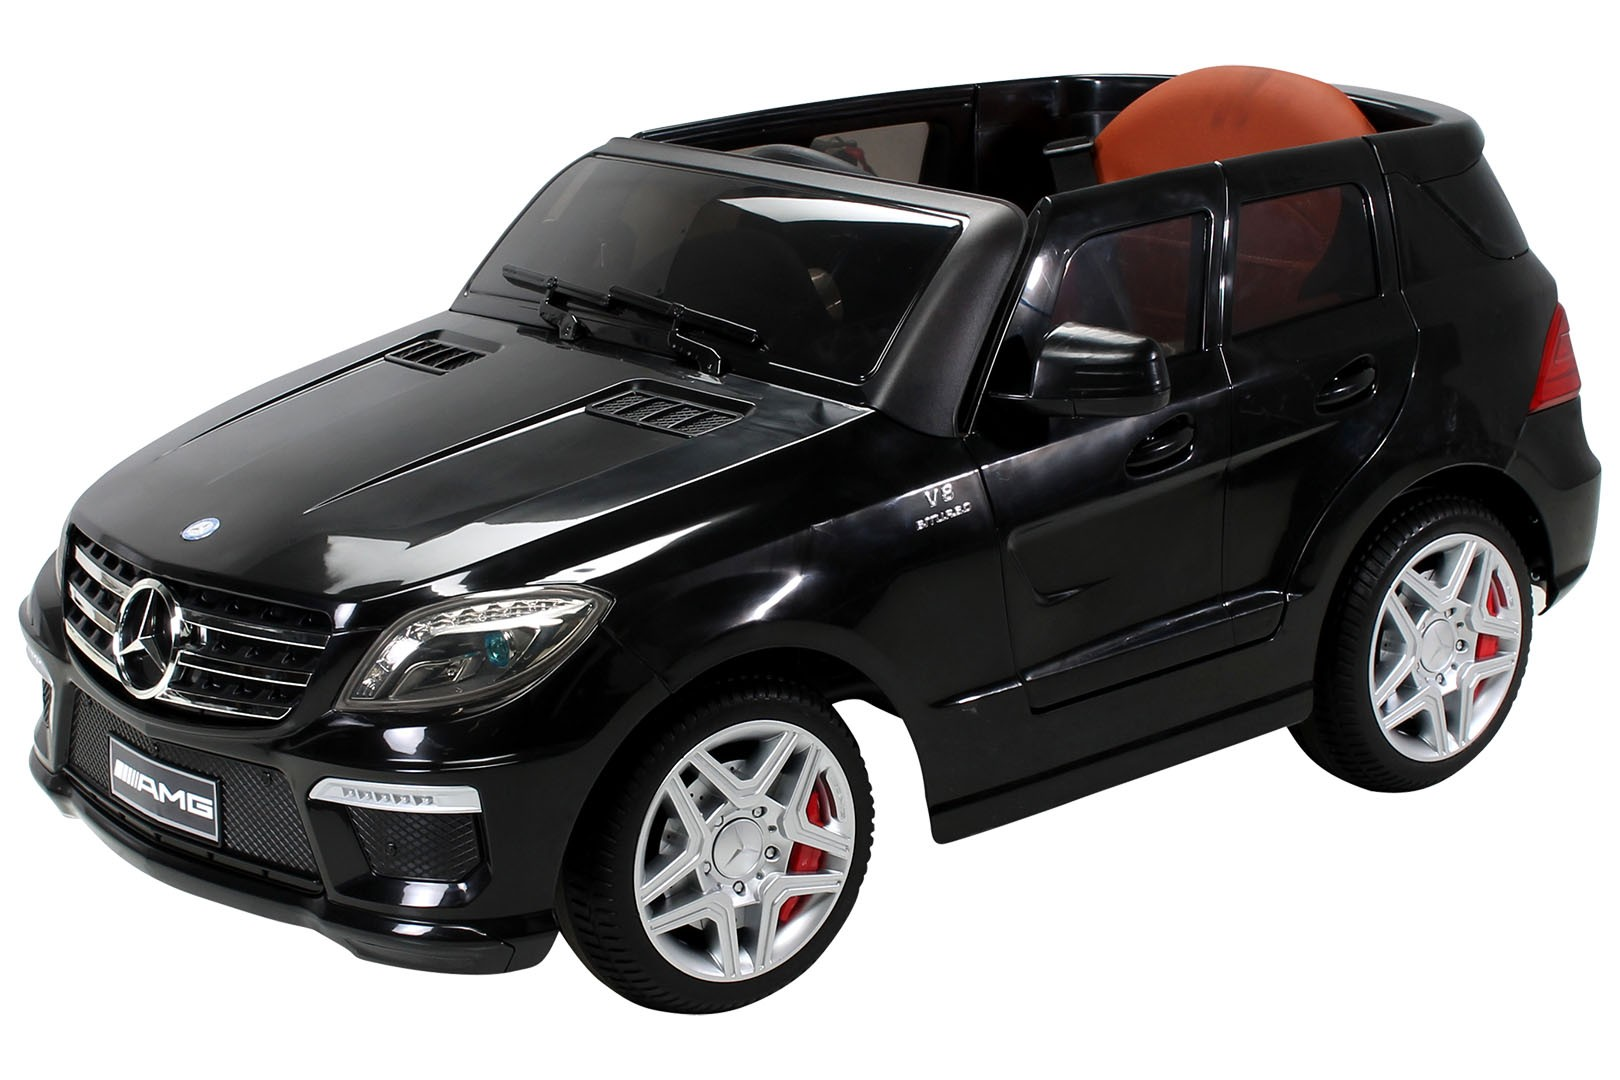 voiture lectrique mercedes ml63 amg 2x35w 12v noir. Black Bedroom Furniture Sets. Home Design Ideas